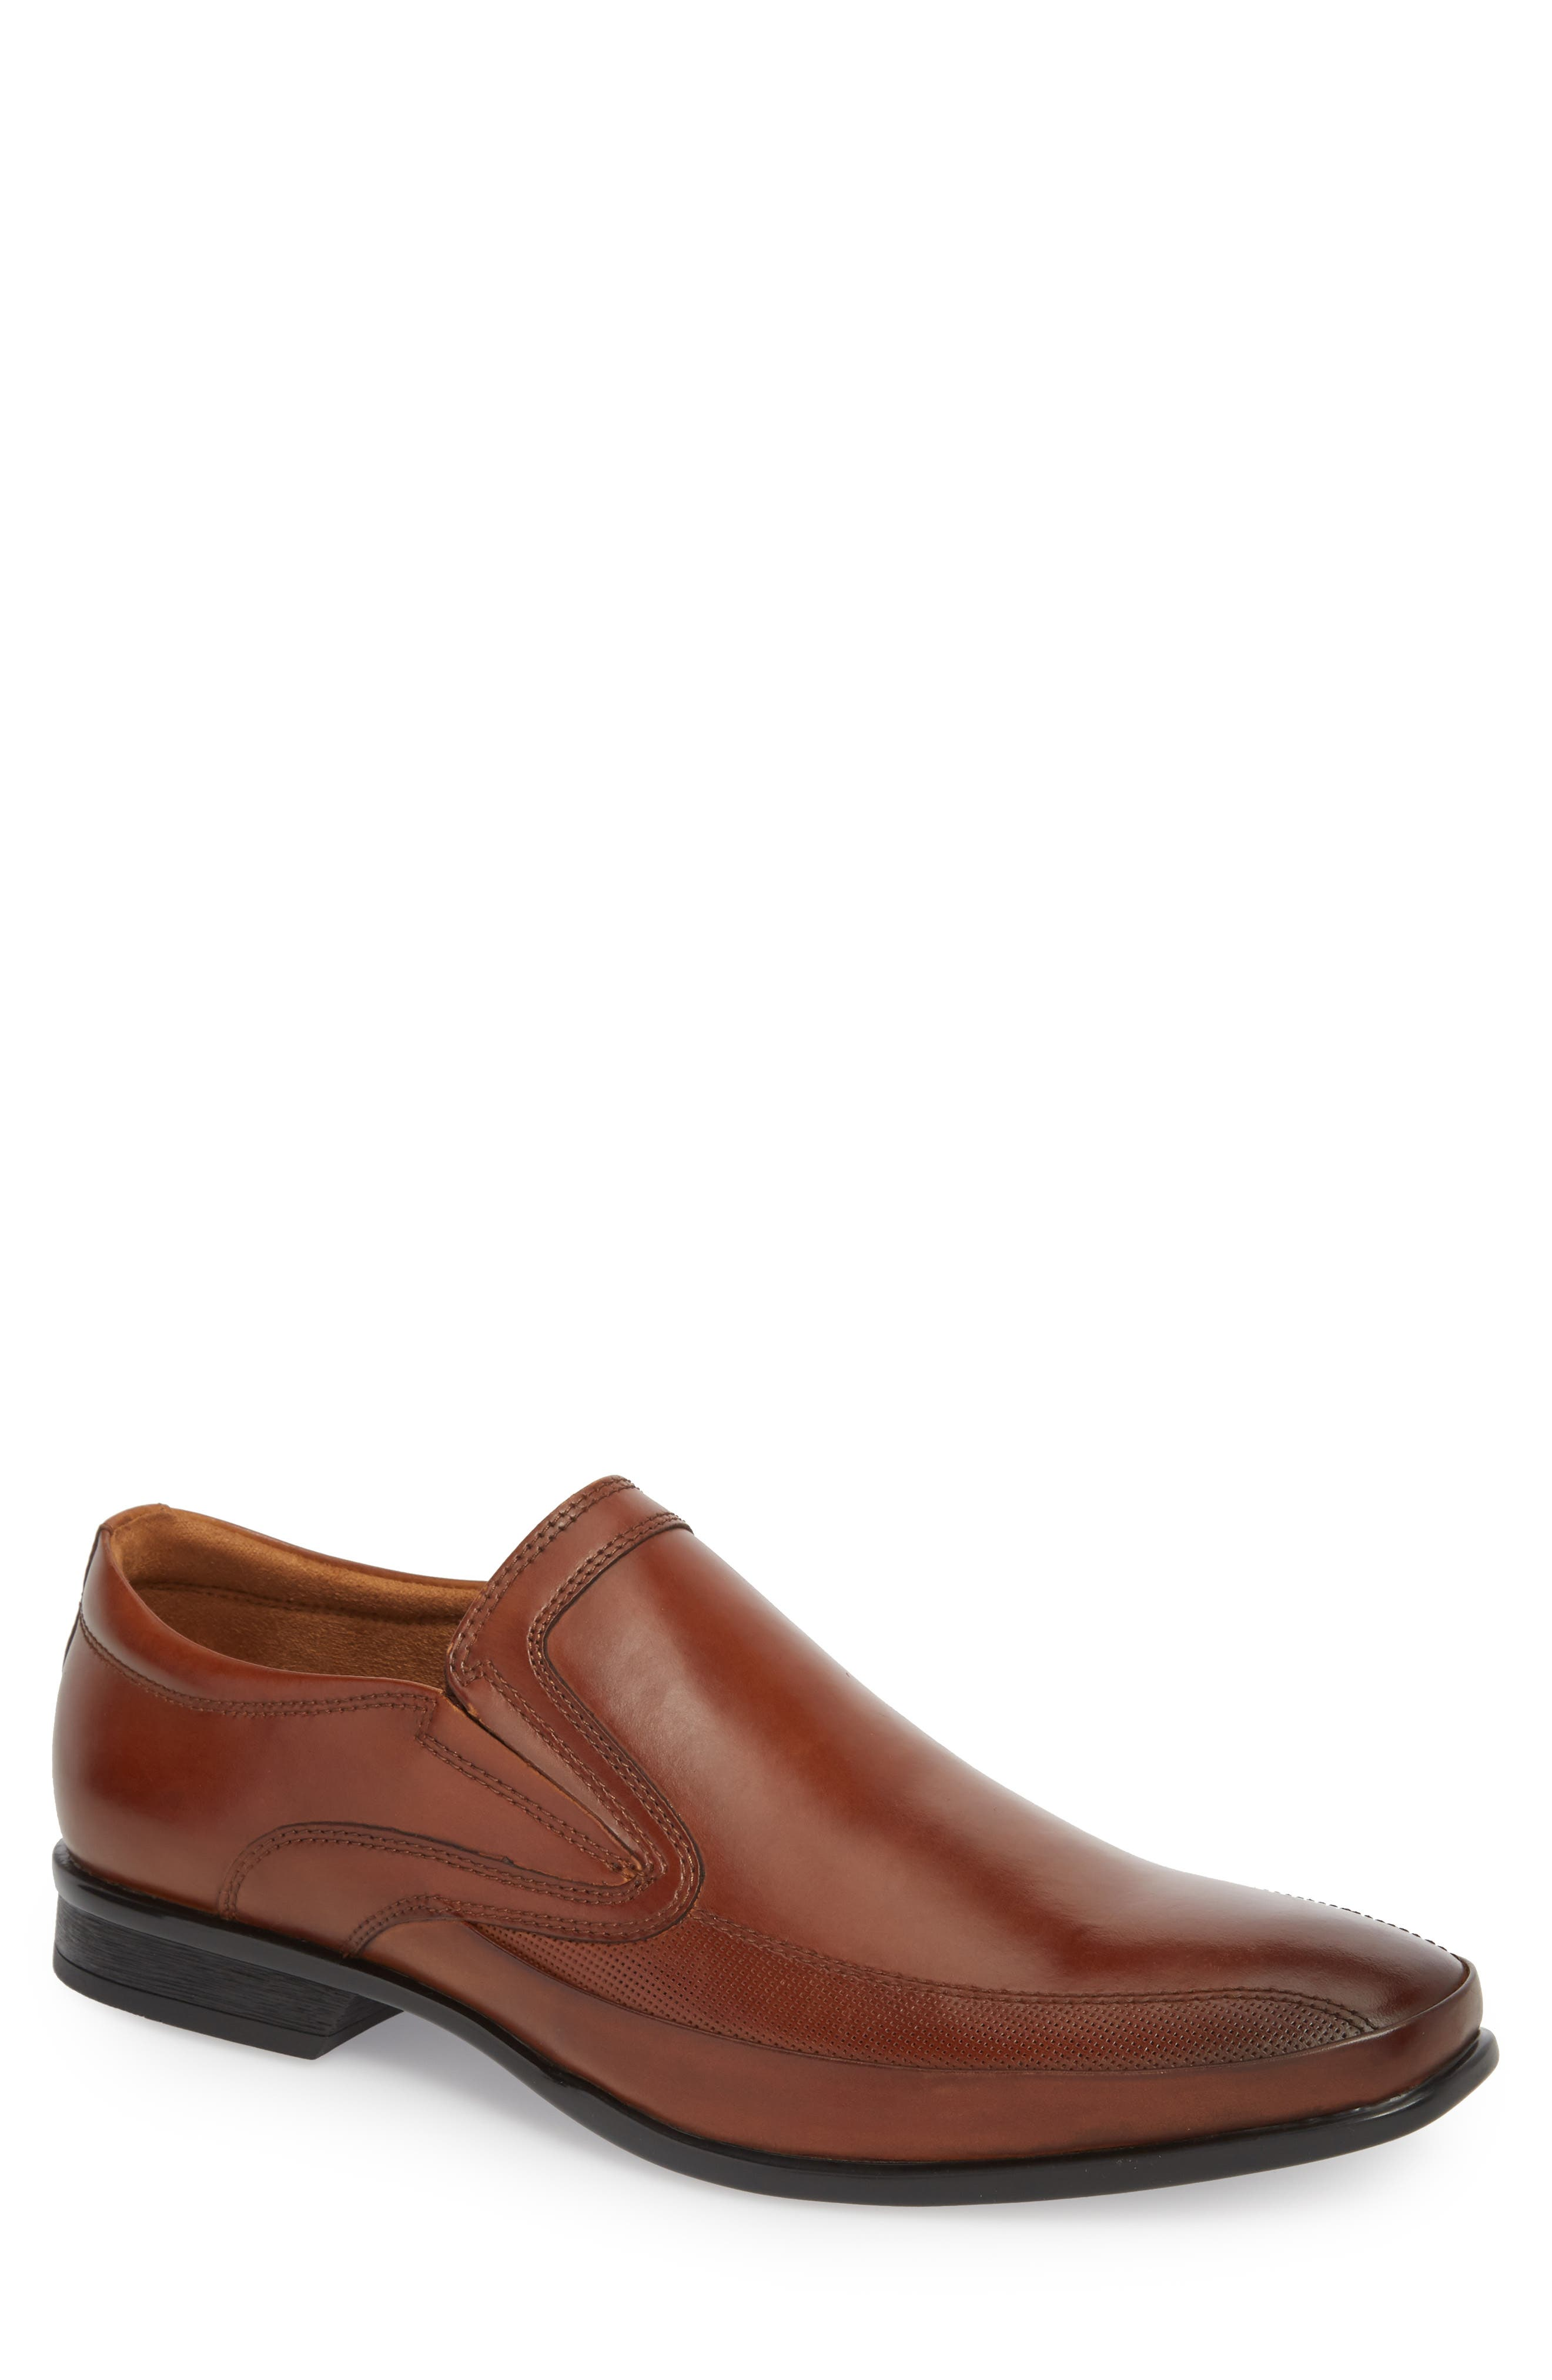 'Extra Official' Venetian Loafer,                         Main,                         color, Cognac Leather